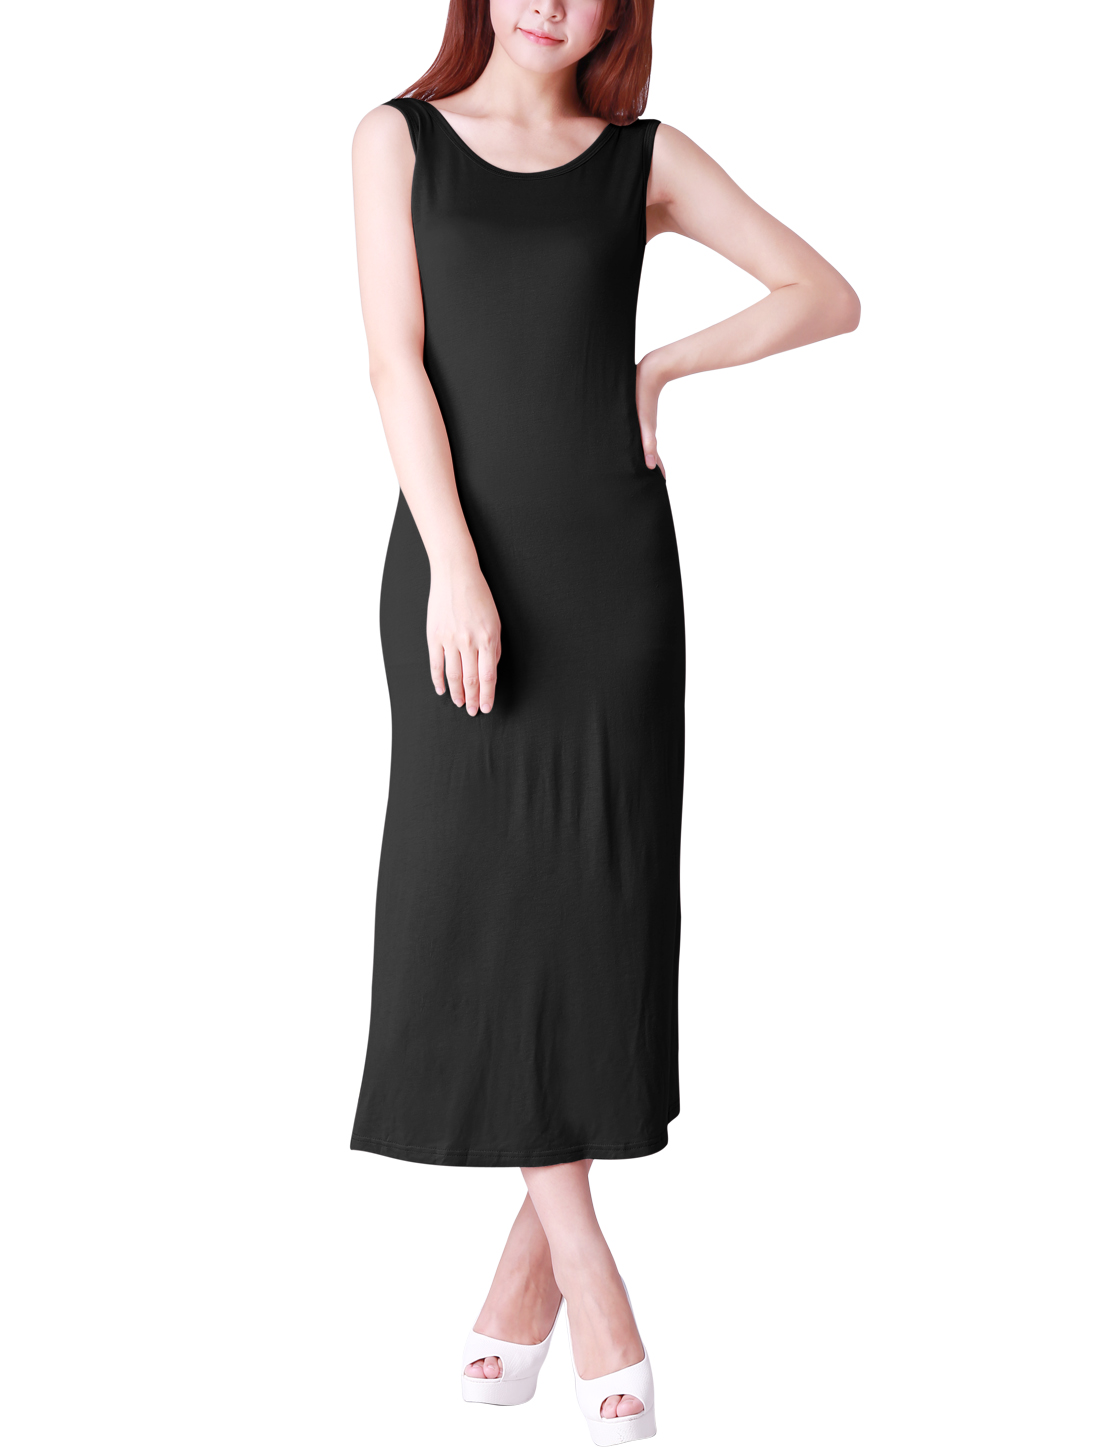 Woman NEW Style U Neck Backless Form-Fitting Black Maxi Dress L